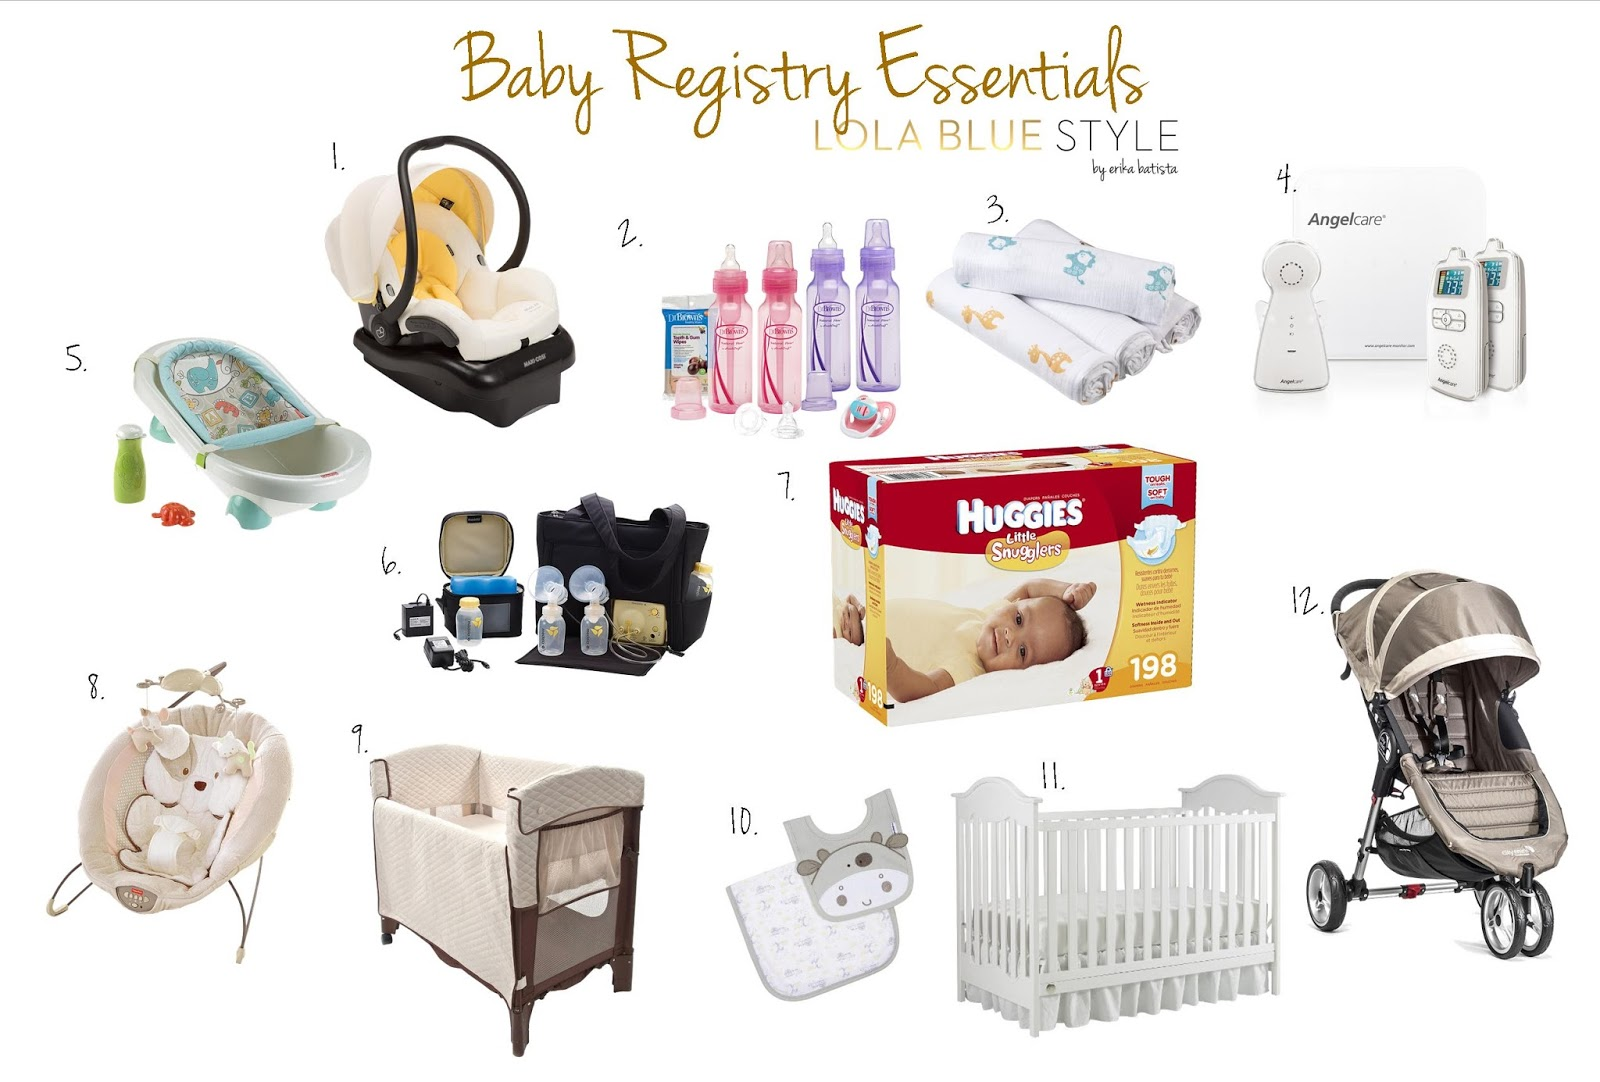 Perfect For Todayu0027s Baby Post I Wanted To Share Some Tips For New Mommies And  Mommies To Be. I Remember When I Was Pregnant With Ben, Registering Can Be  Pretty ...